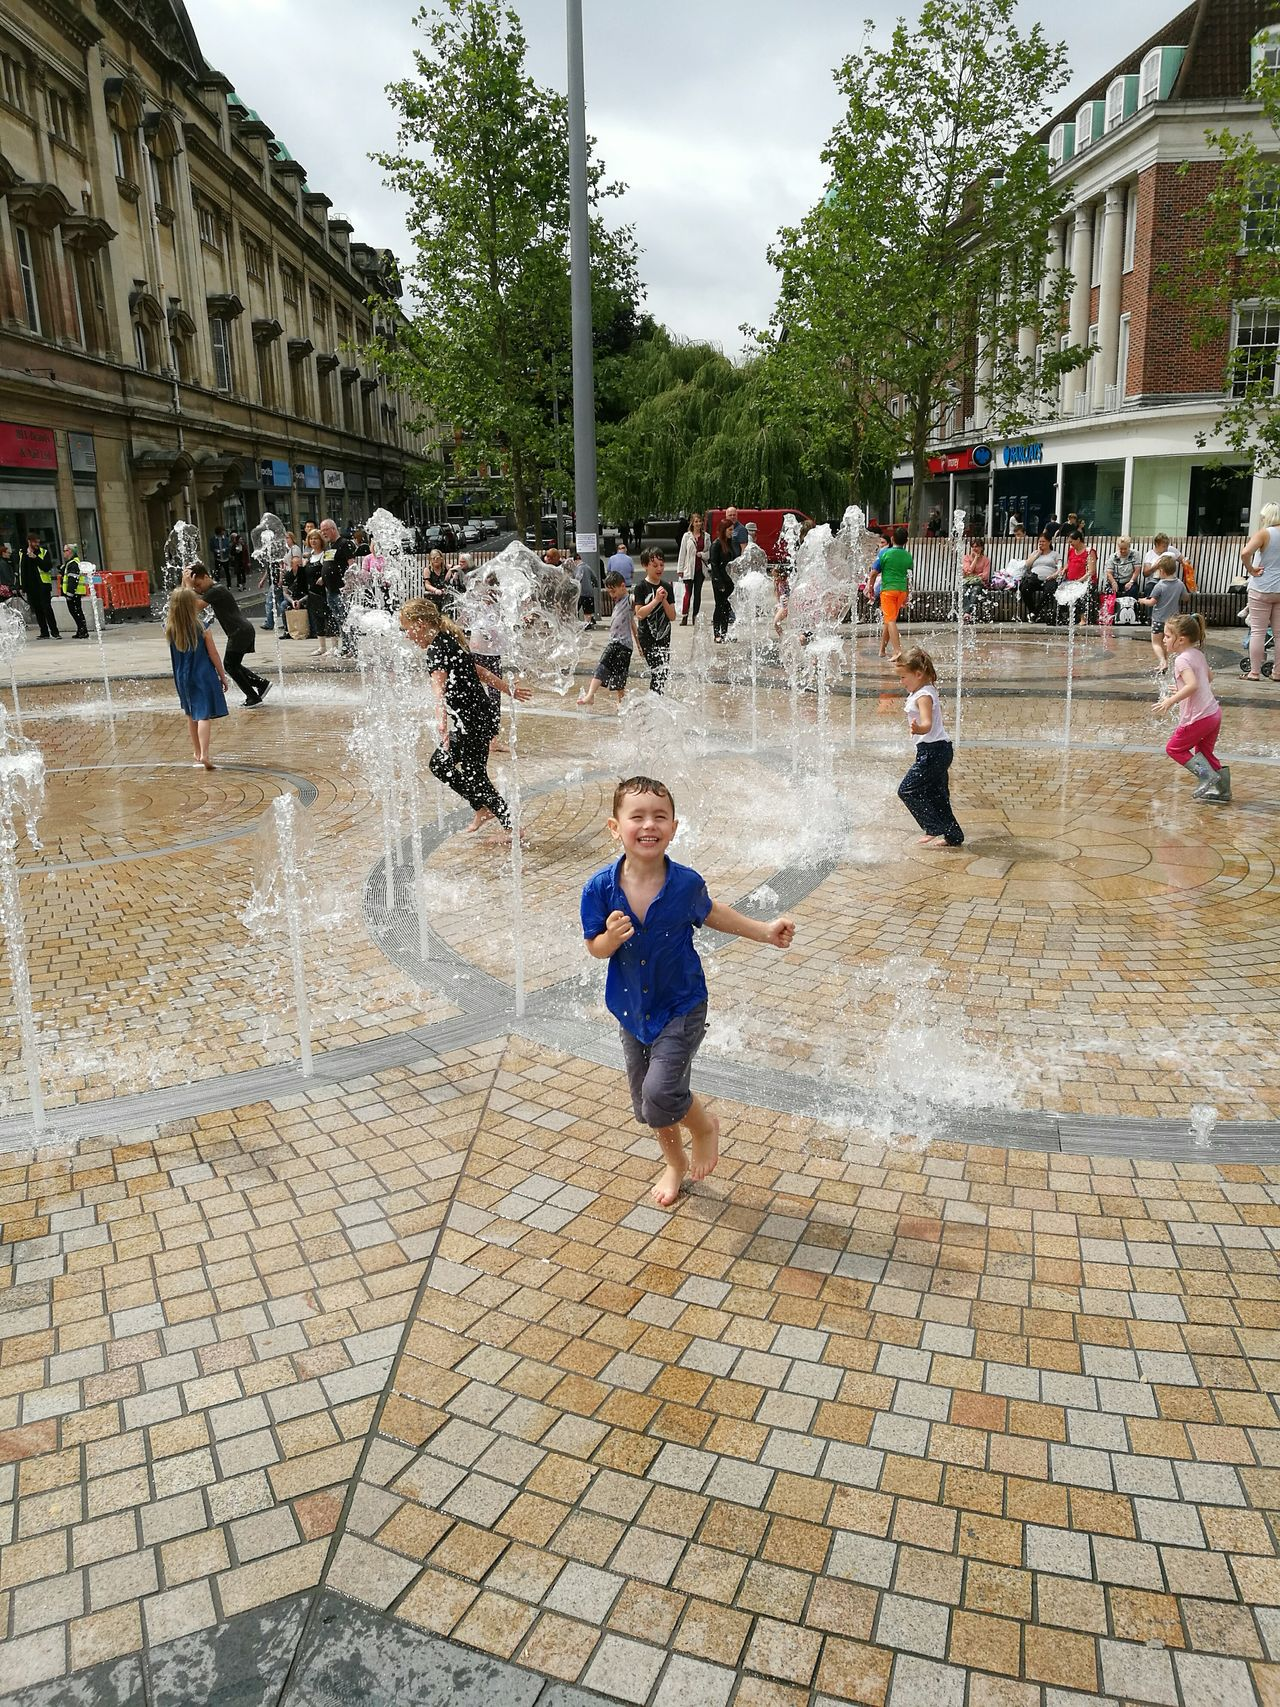 Playing Child Large Group Of People Outdoors People Spraying Boys My Boy Enjoying Him Self Hull City Centre Hull City Of Culture 2017 City Of Culture 2017 Arts Culture And Entertainment Childhood Togetherness Day